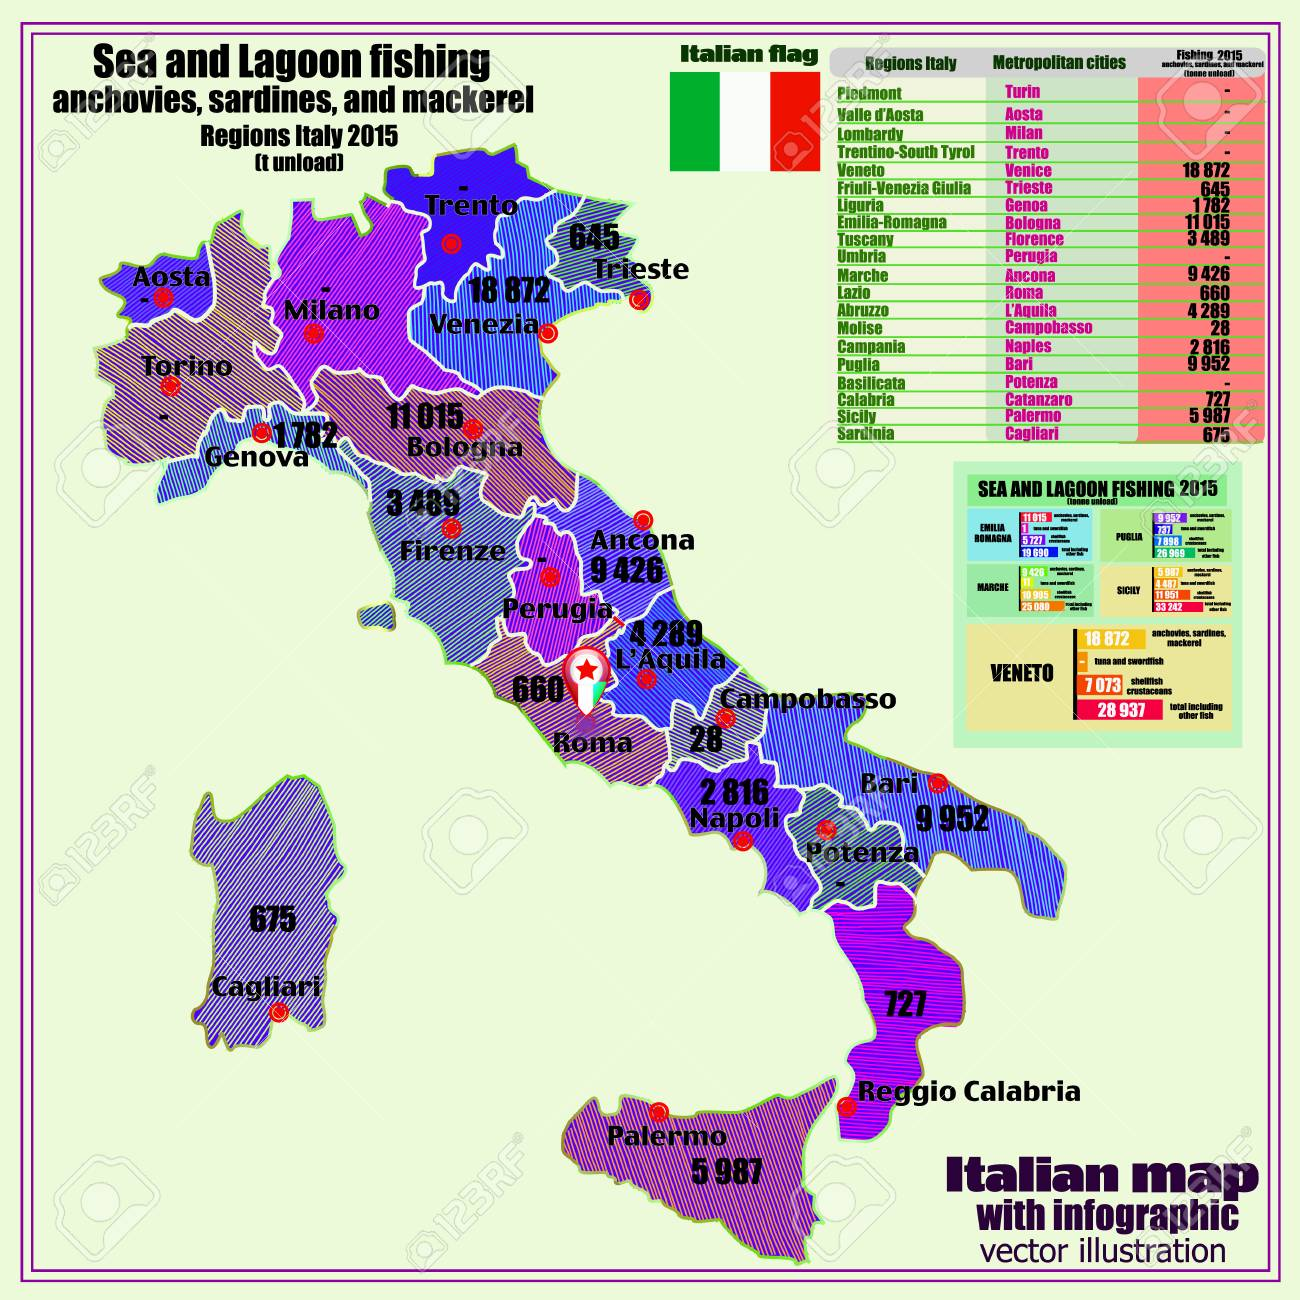 Regions Of Italy Map With Cities.Map Of Italy With Infographic Sea And Lagoon Fishing Italy Map